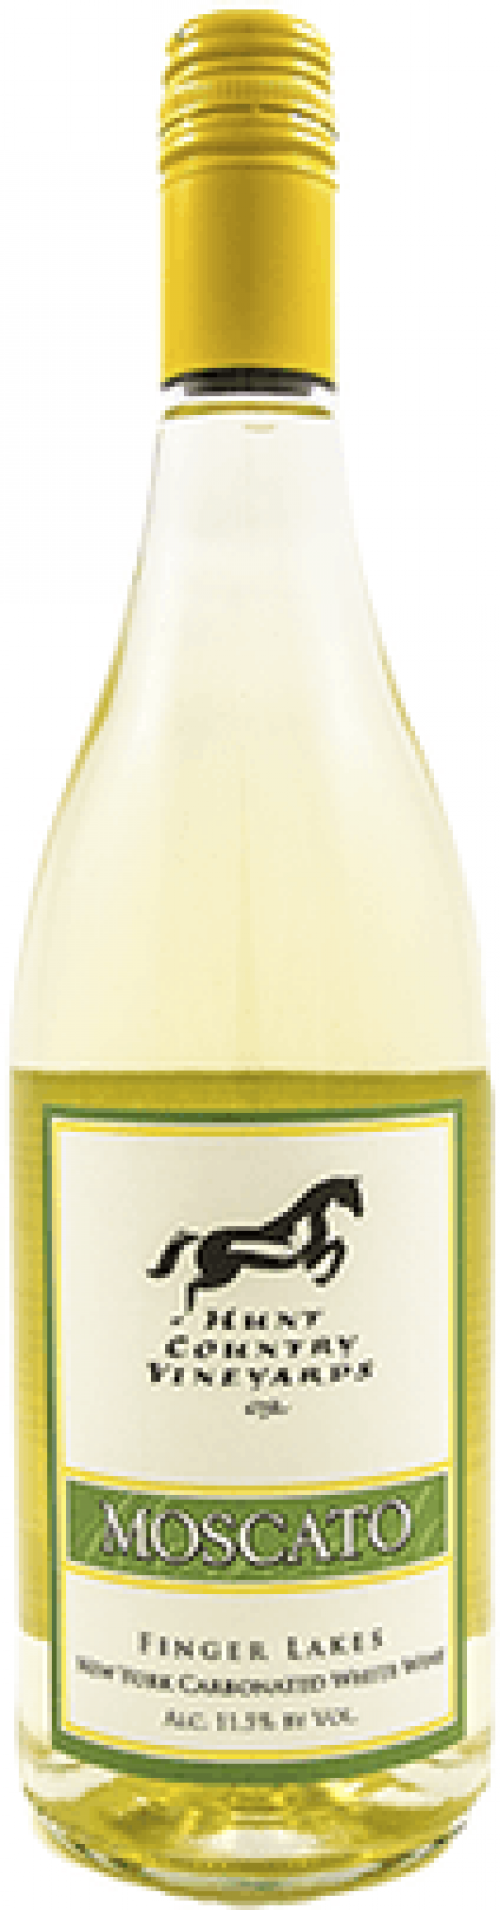 Hunt Country Moscato 750ml NV